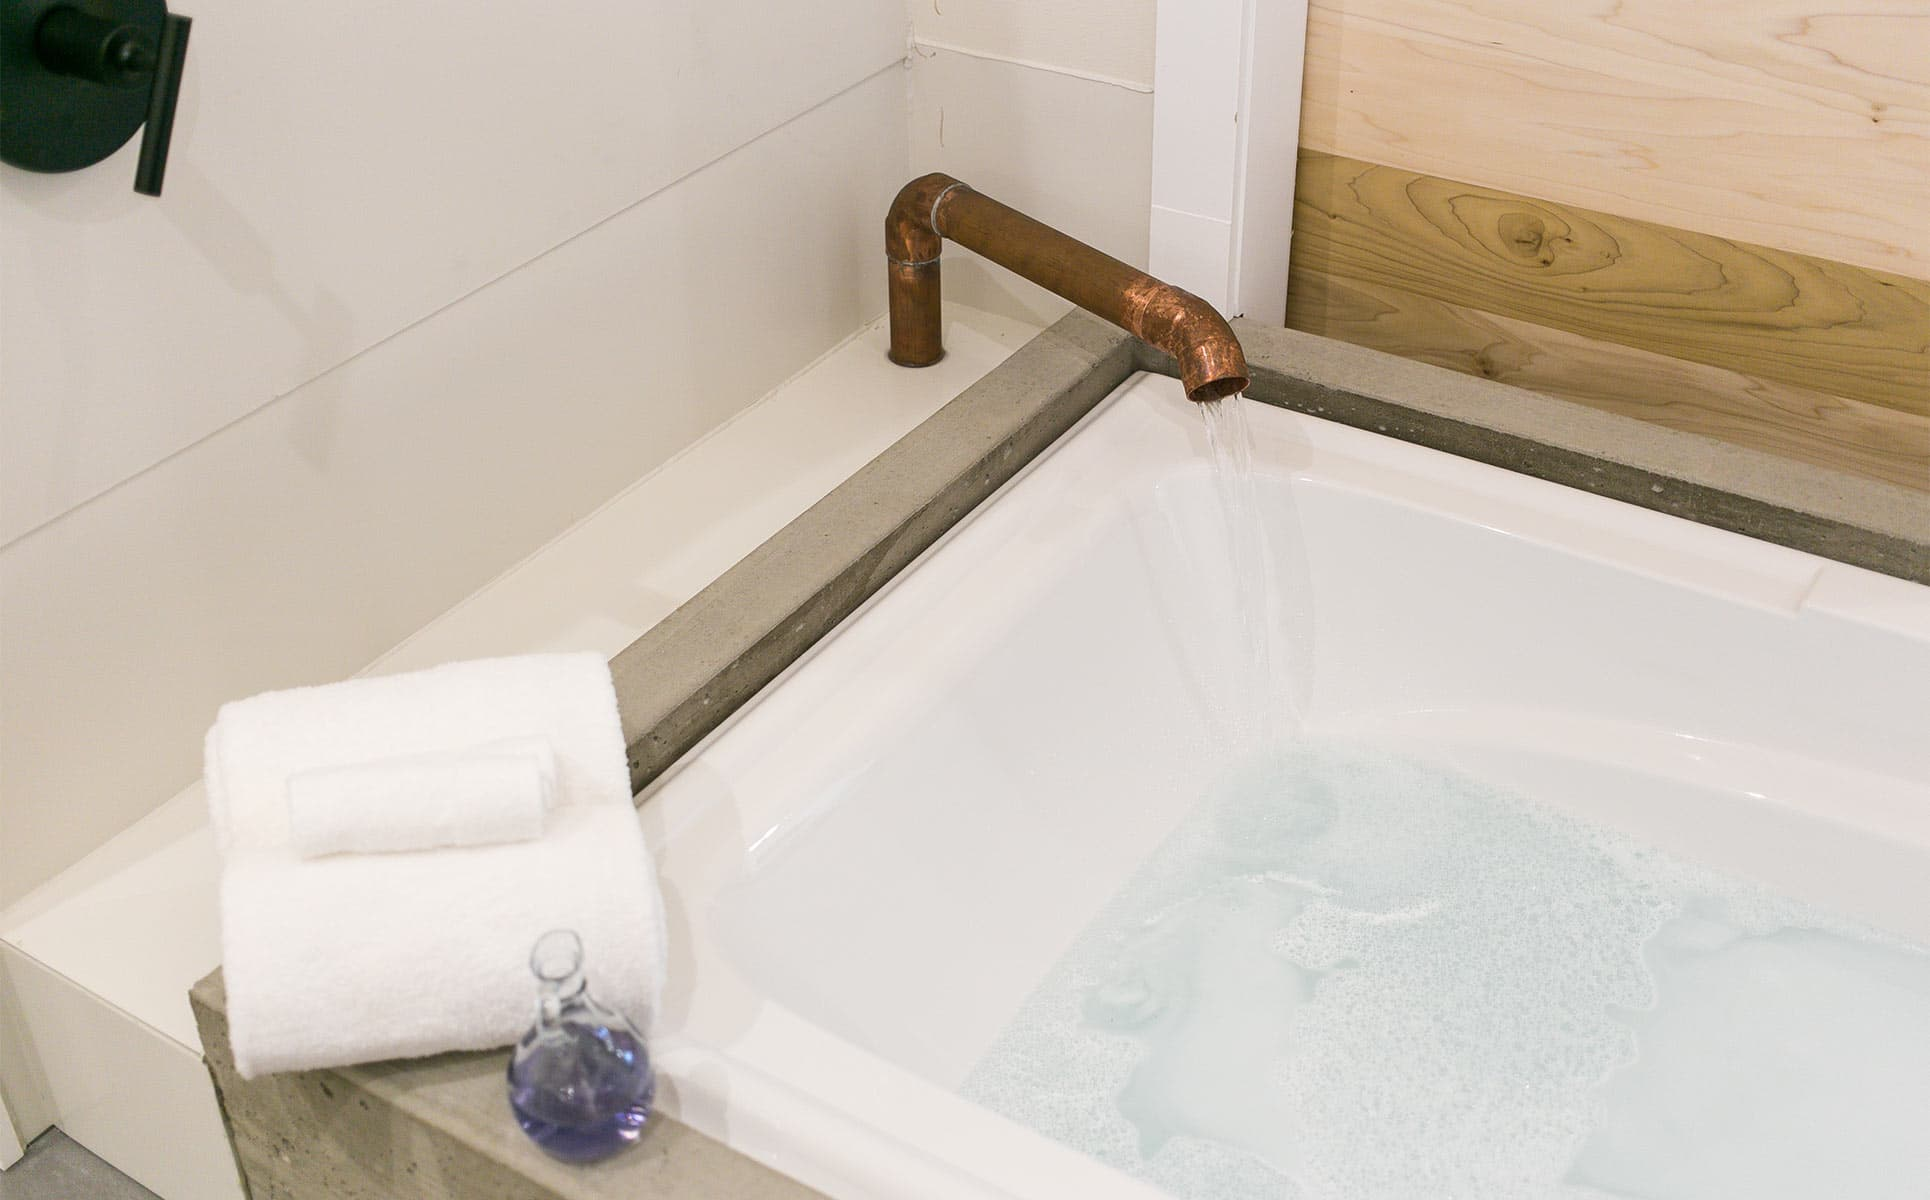 Jetted tub with copper faucet